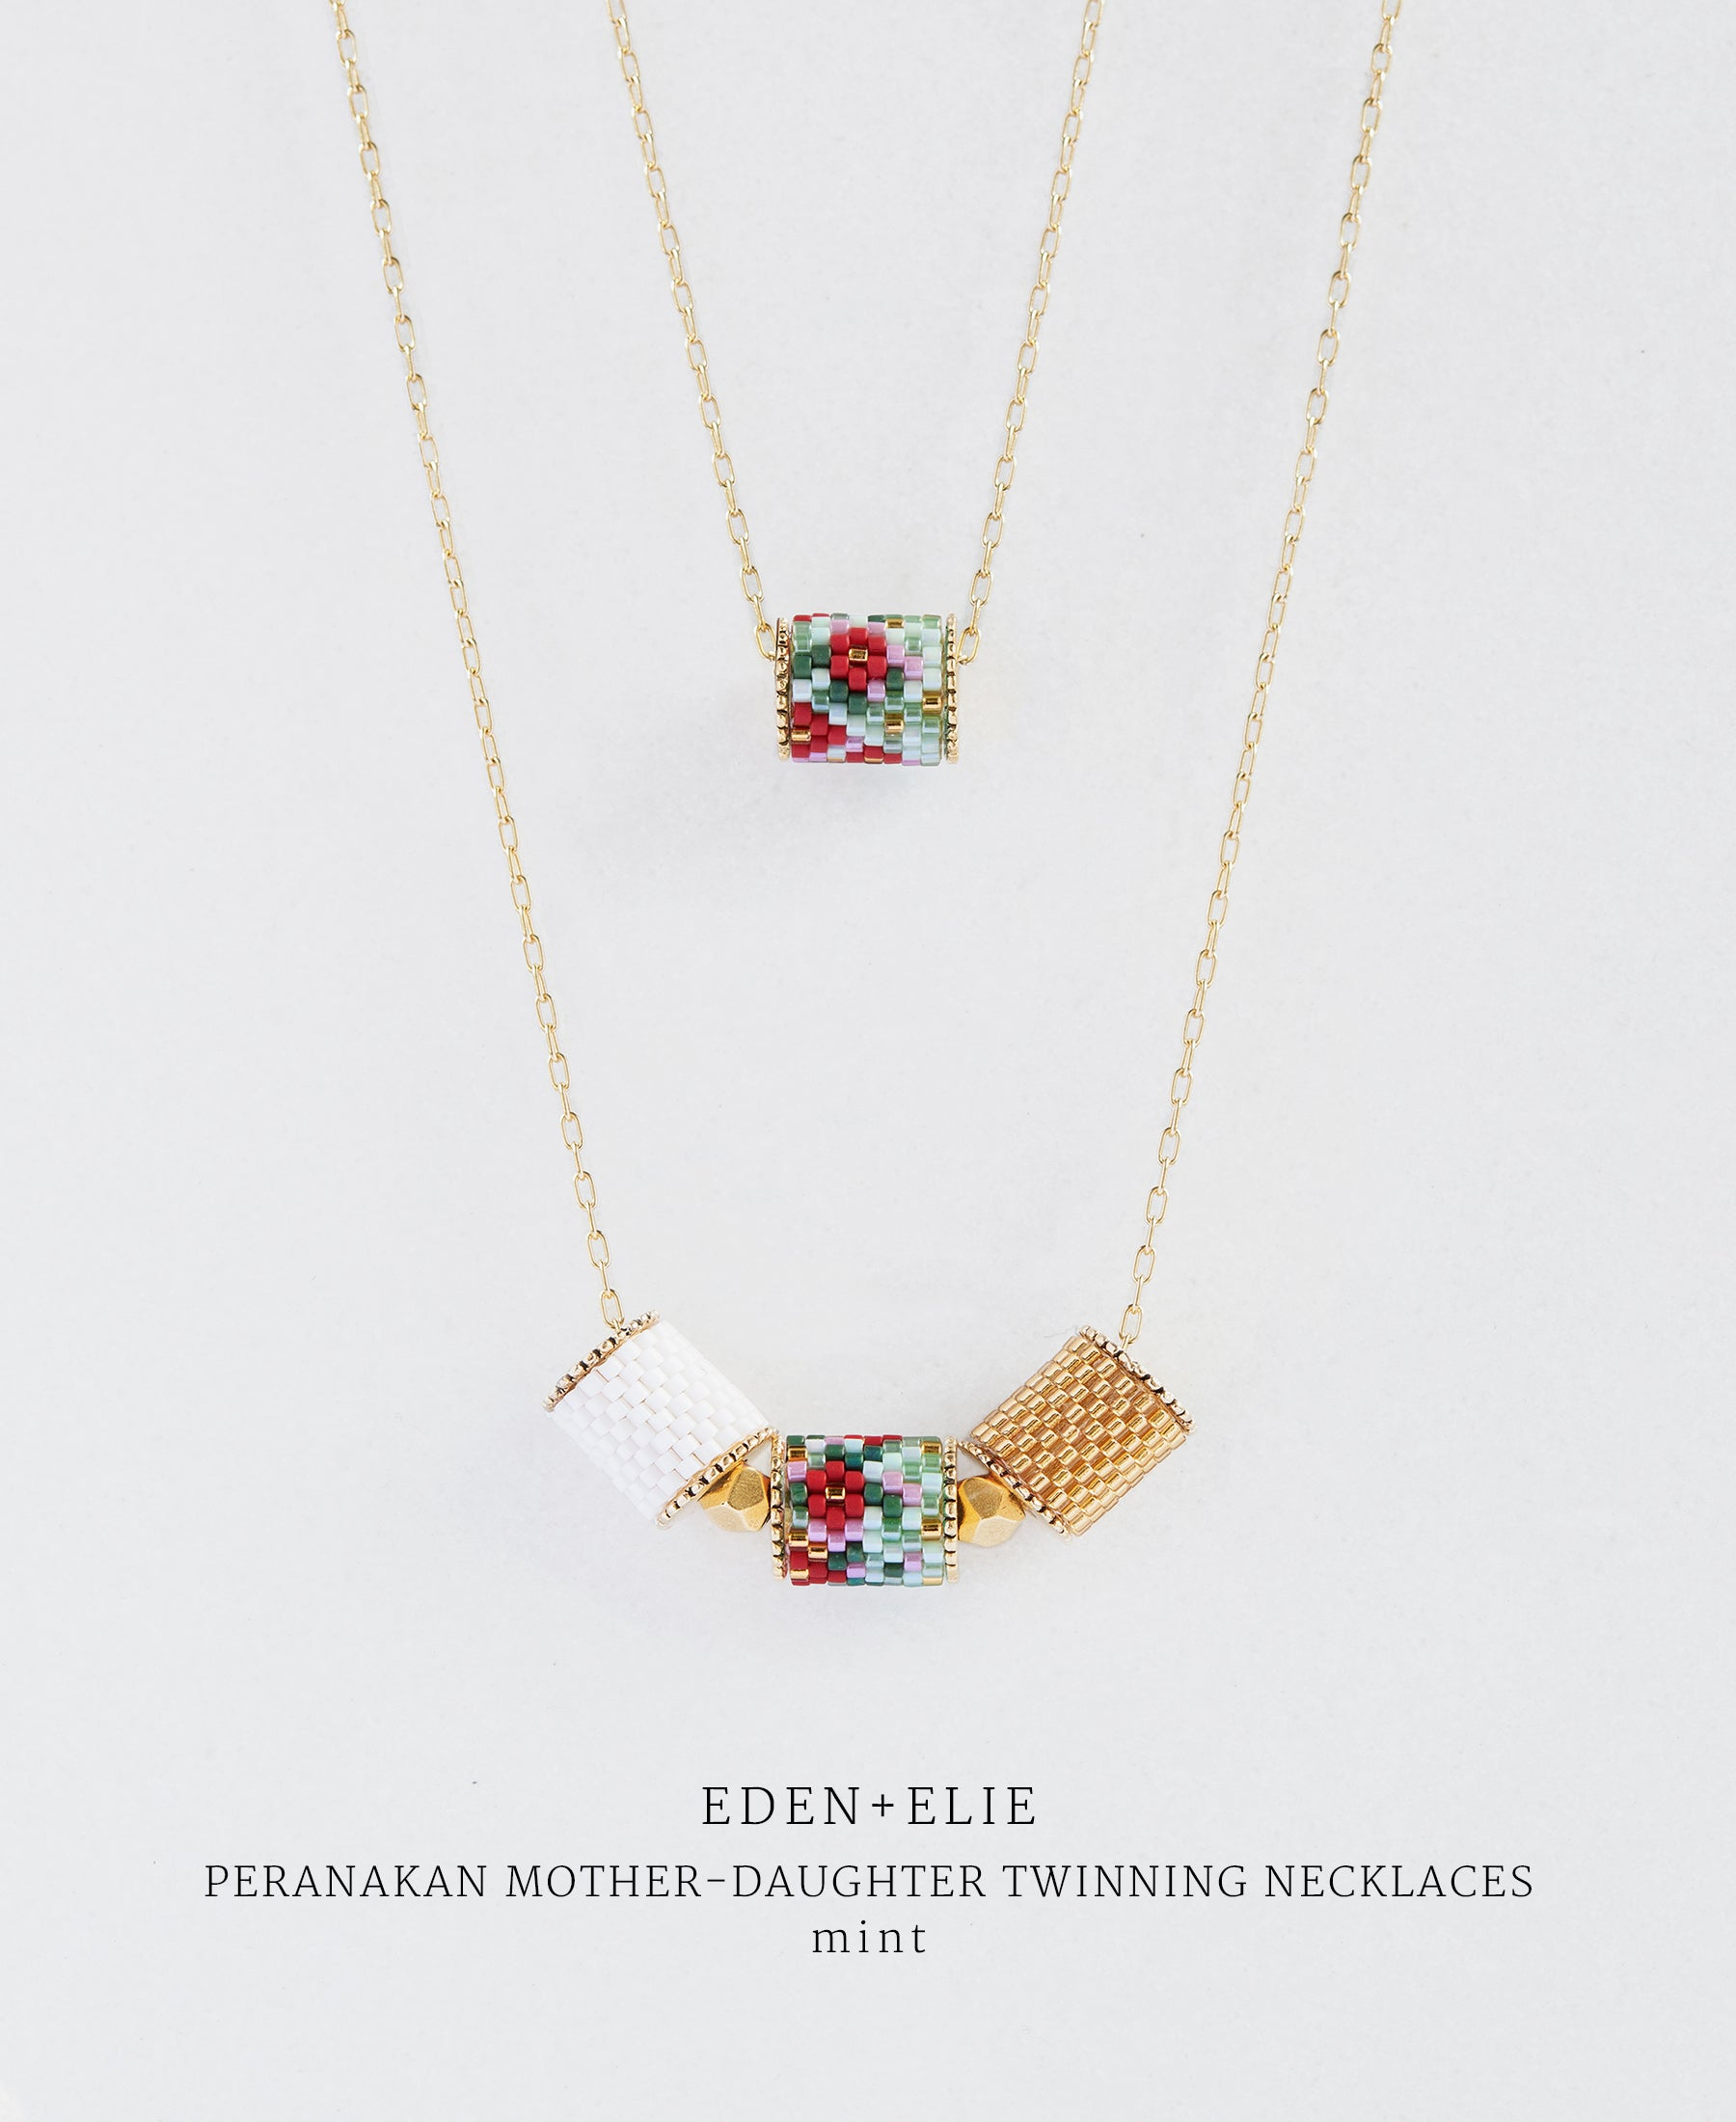 EDEN + ELIE Mother-Daughter twinning necklaces set - peranakan mint